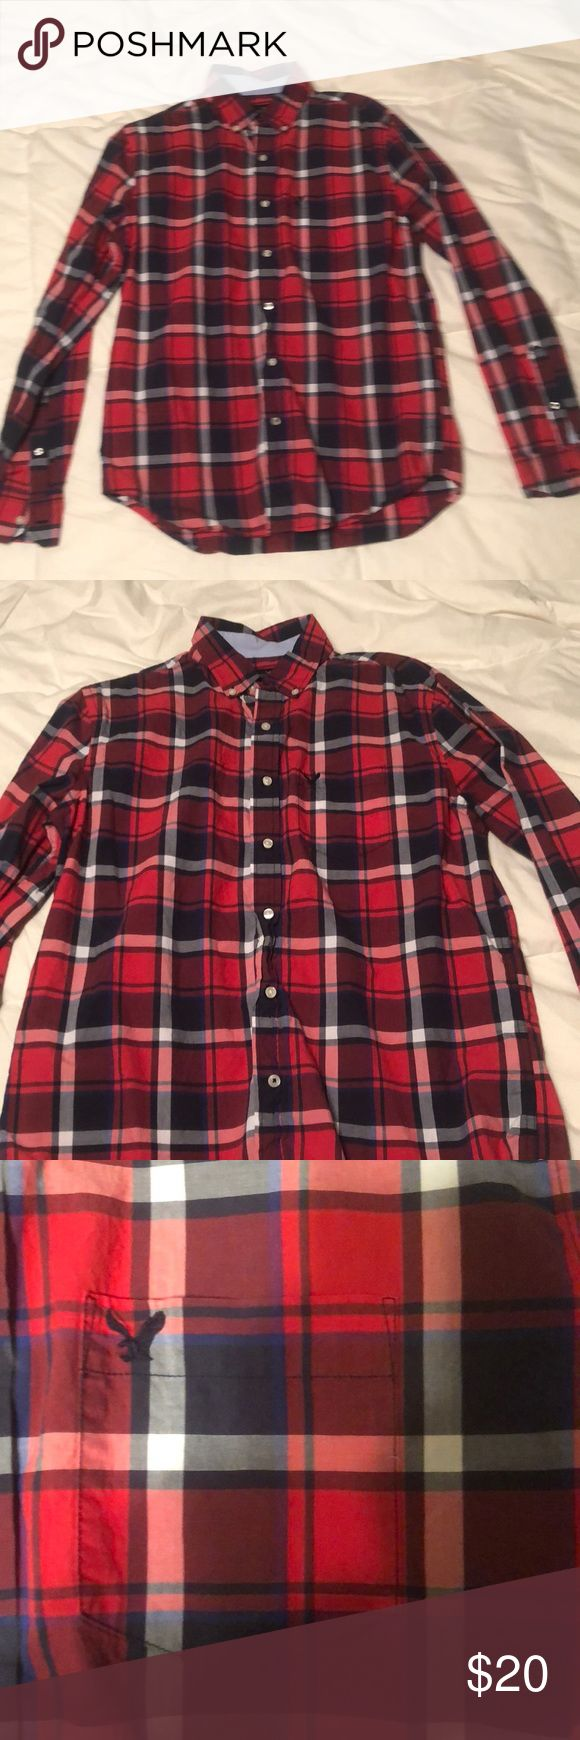 American Eagle Button Down (M) American Eagle Button Down:  -Medium -Red, white, blue plaid  -NOT FLANNEL MATERIAL -button wrist cuffs -buttons to secure tie at collar American Eagle Outfitters Shirts Casual Button Down Shirts